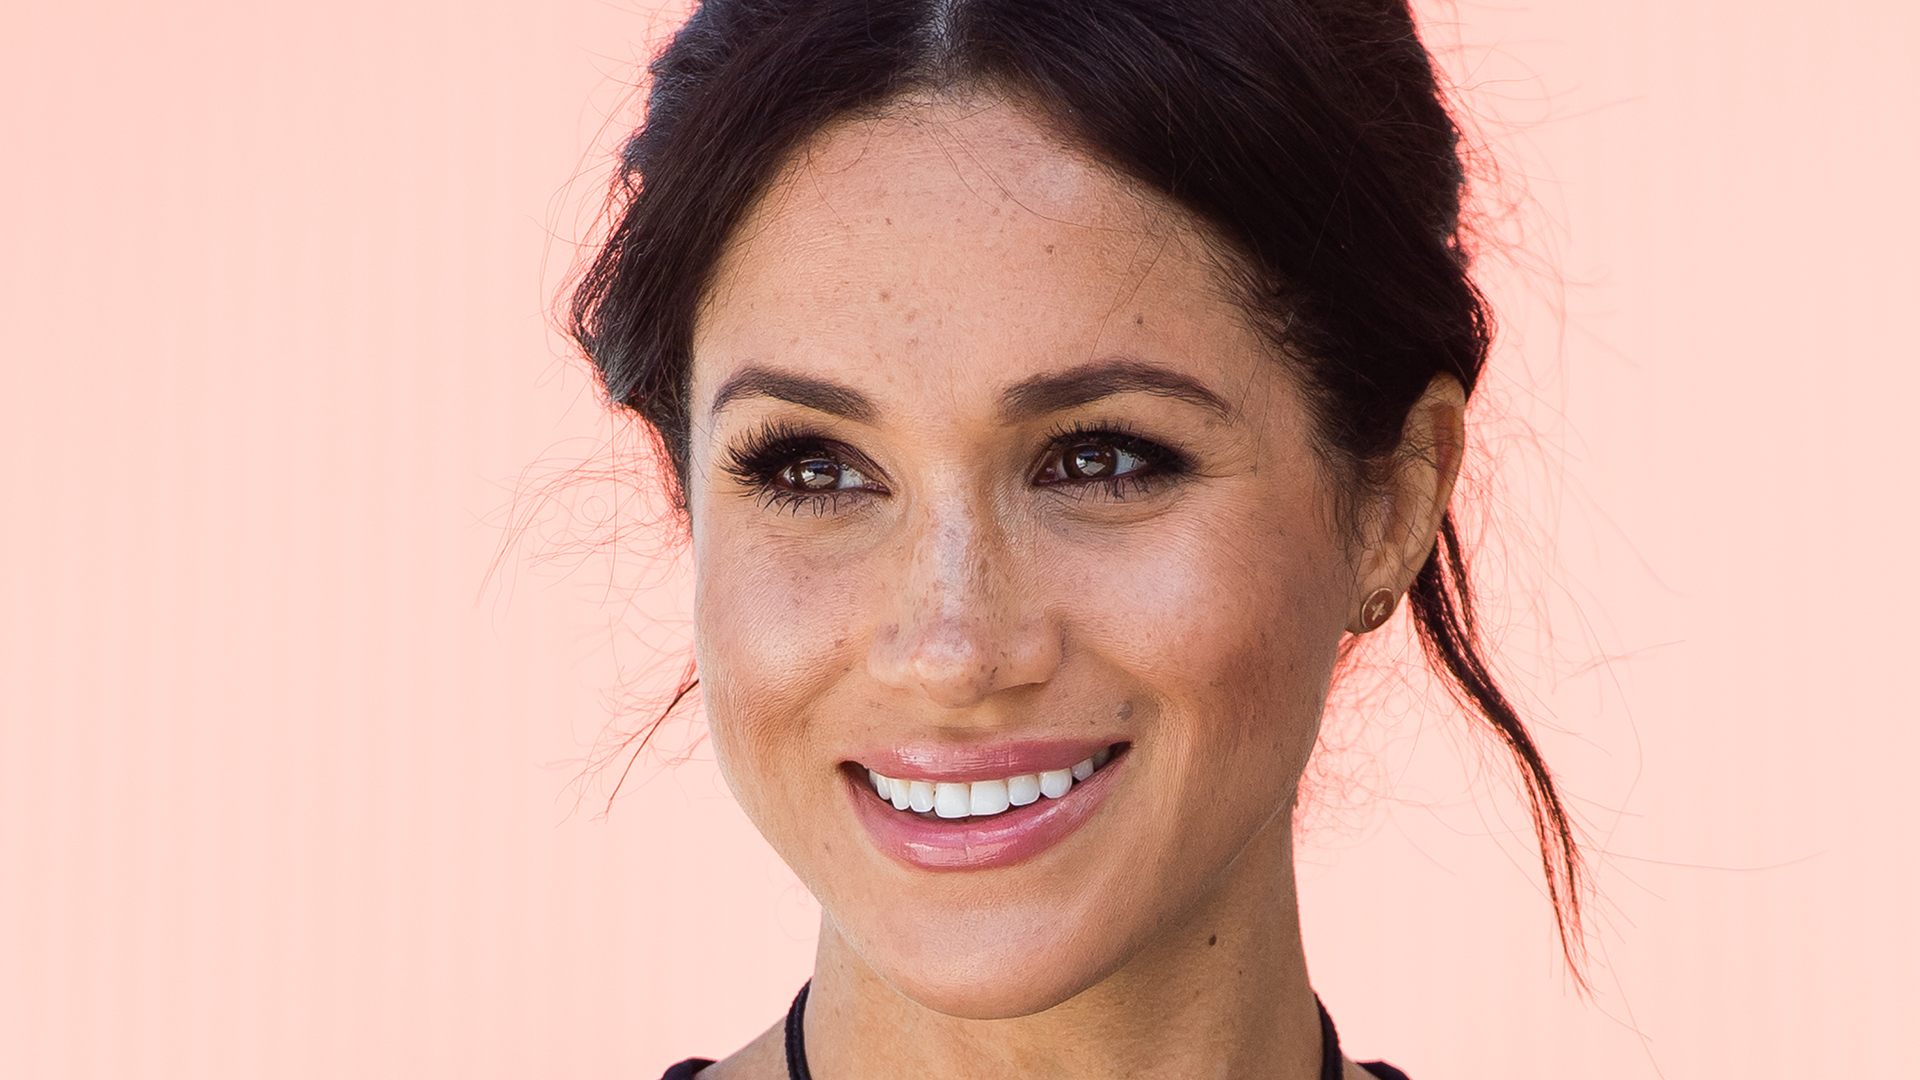 The Drugstore Beauty Products Meghan Markle's Makeup Artist Would Actually Buy